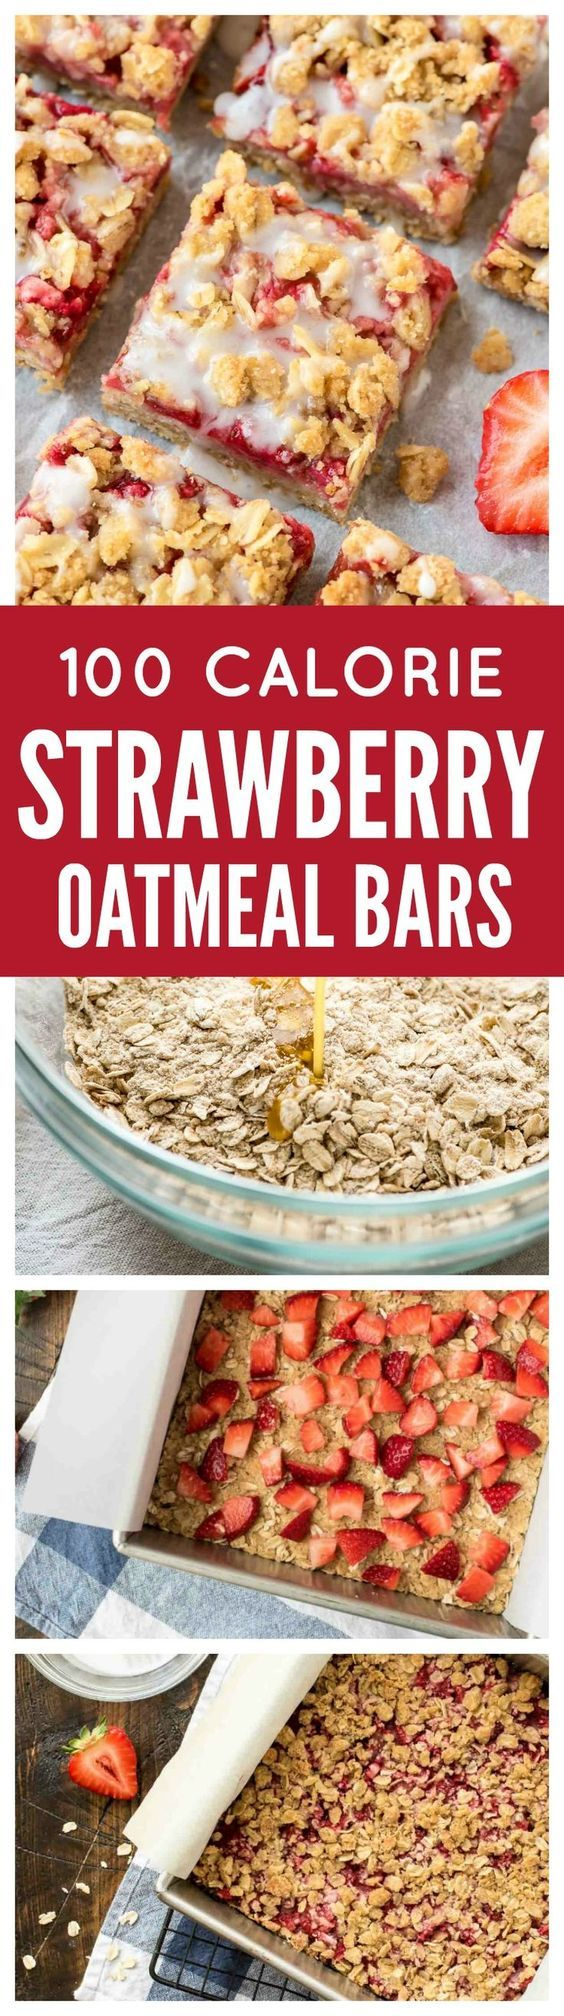 Strawberry Oatmeal Bars: only 100 calories per bar! With a buttery crust, sweet strawberry filling, and delicious crumb topping, they make wonderful dessert bars to take to a party or potluck but are healthy enough for a snack. So easy even kids can make them!